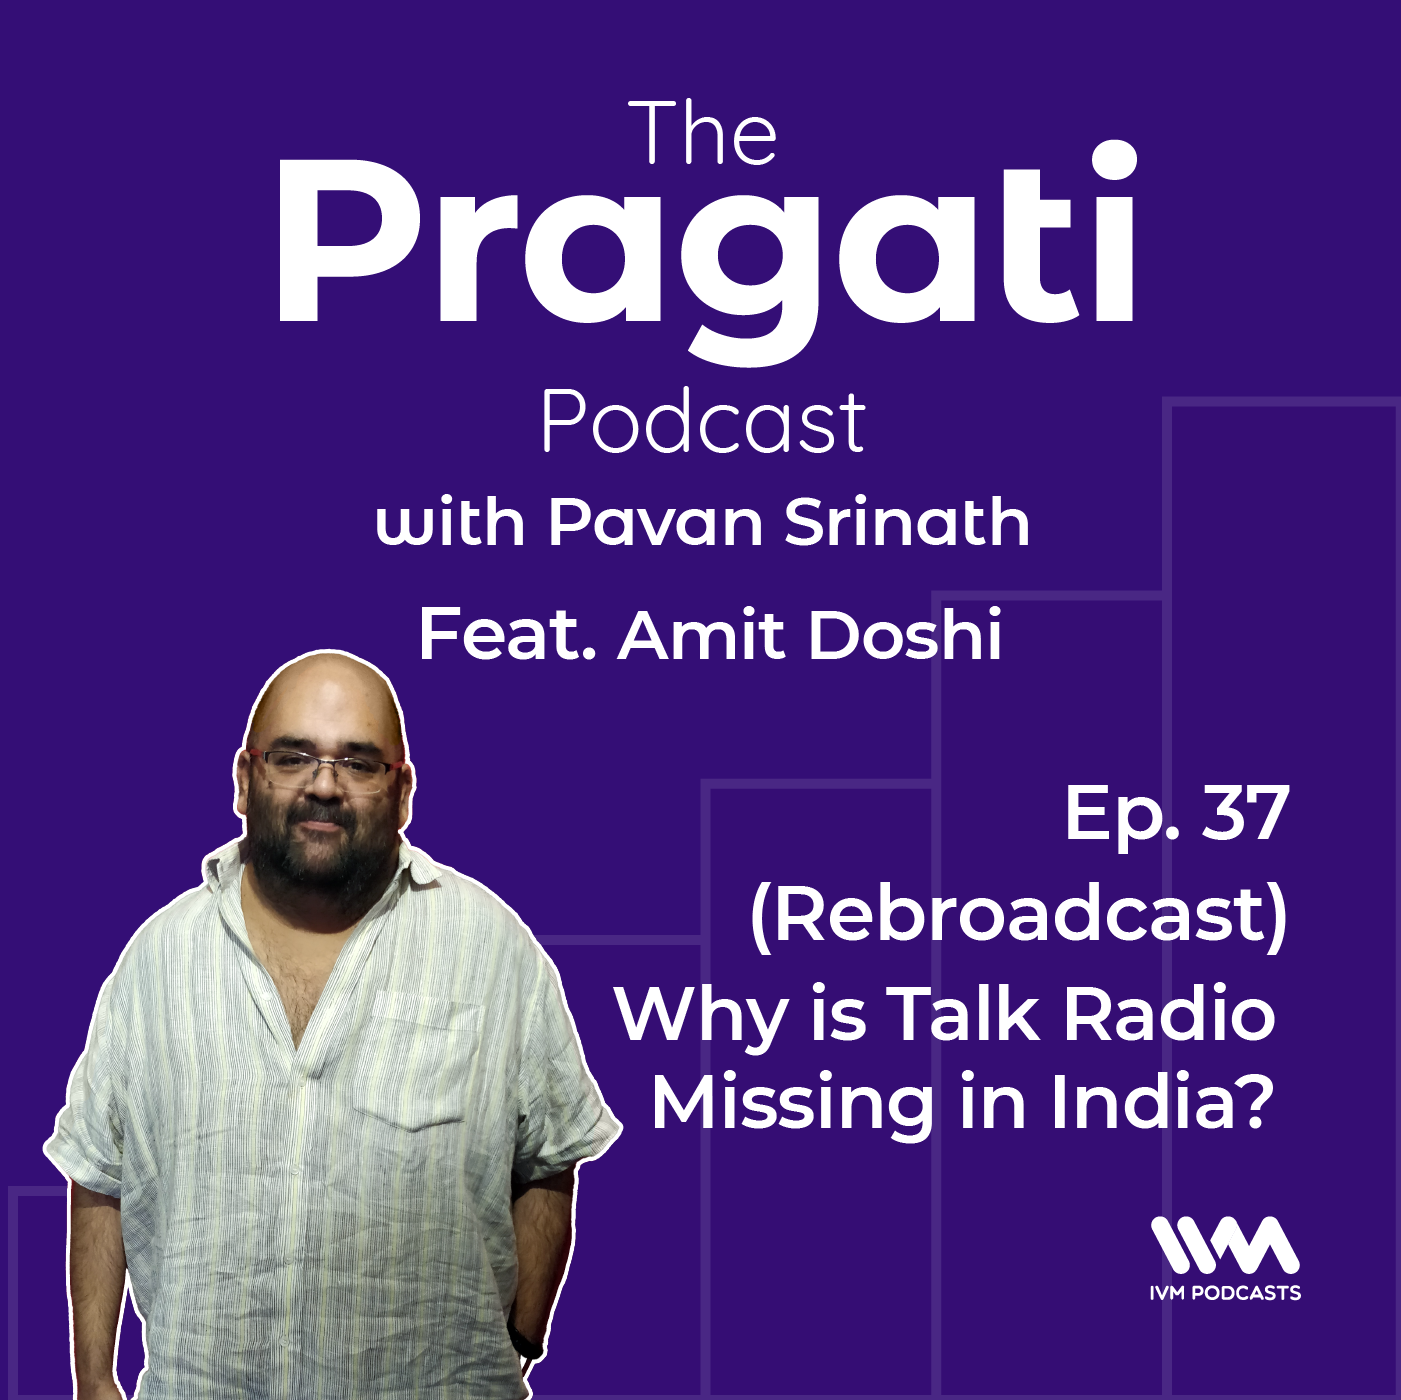 (Rebroadcast) Ep. 37: Why is Talk Radio Missing in India?